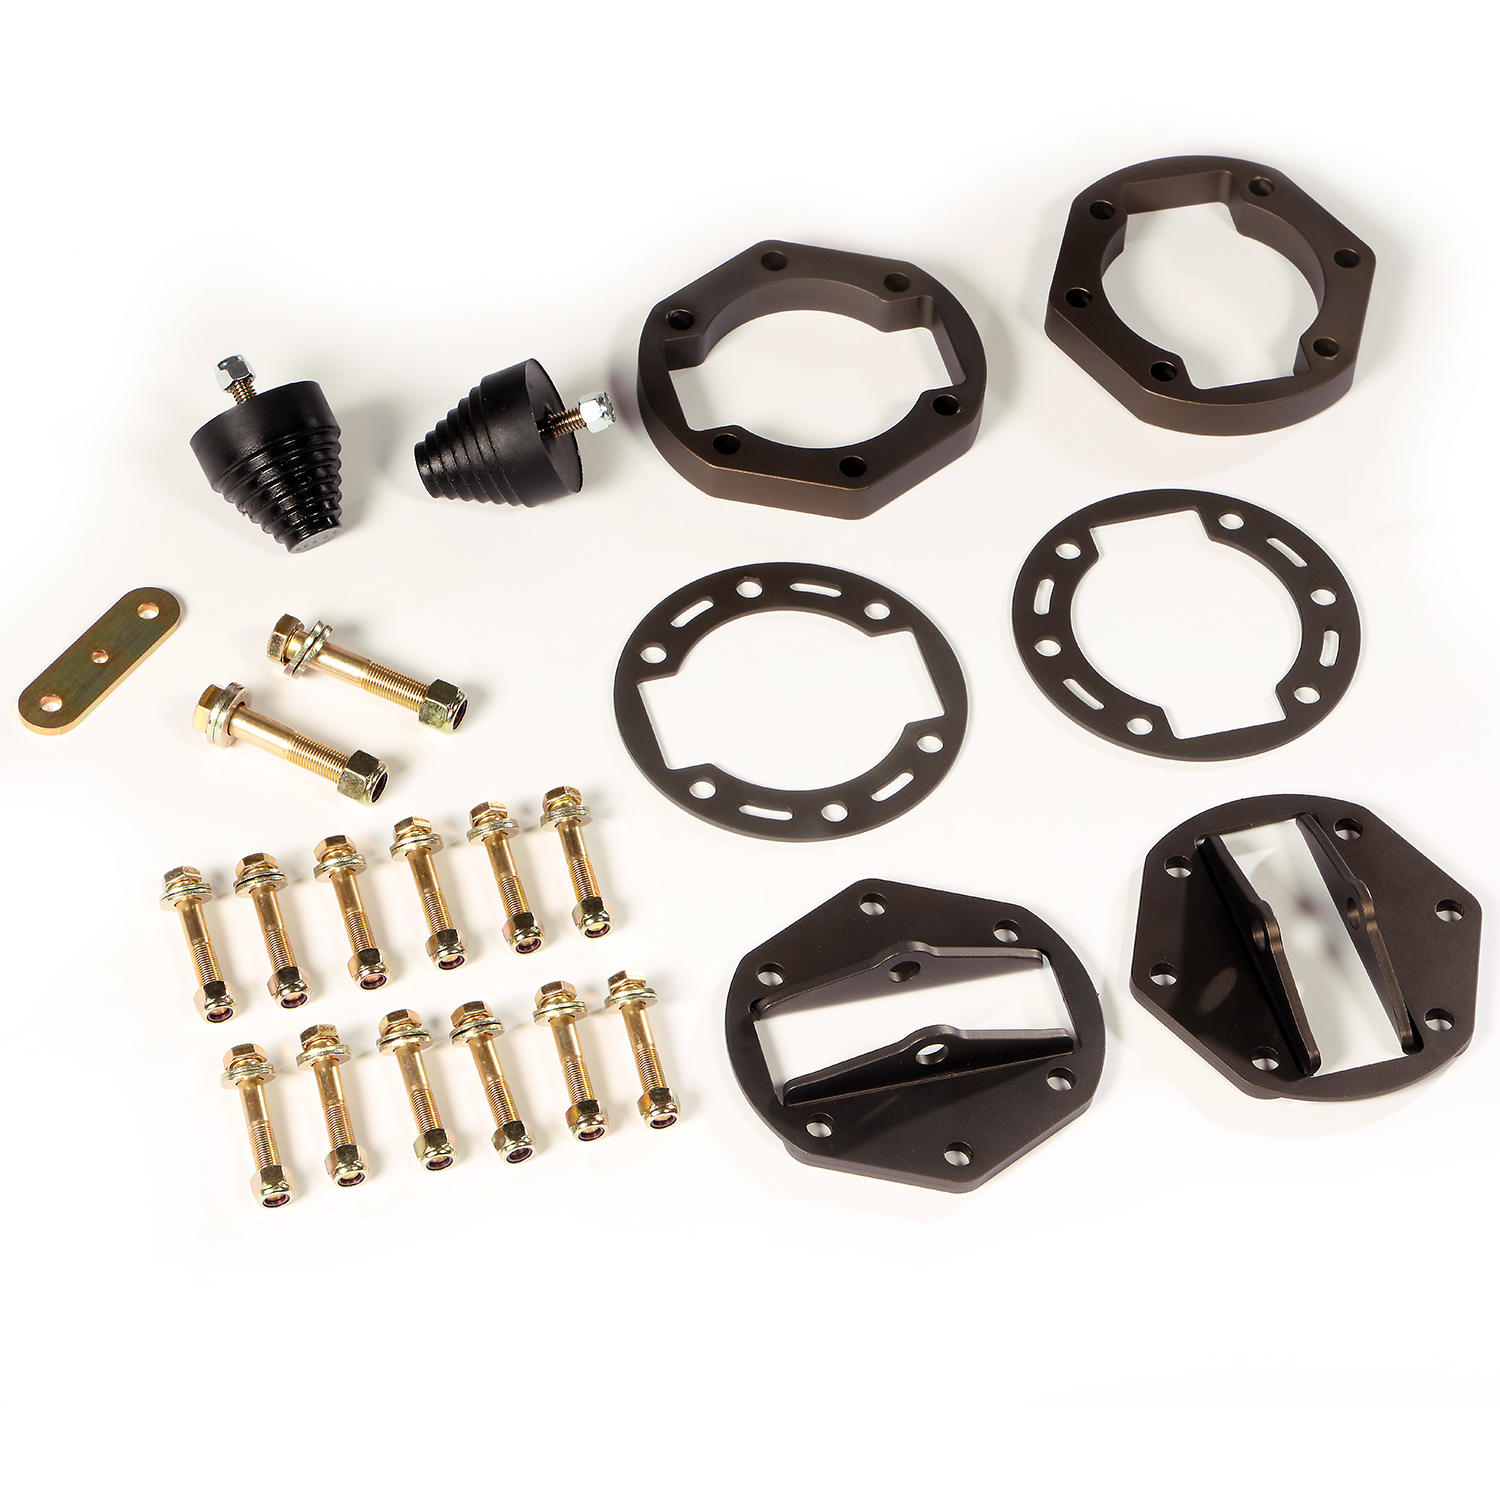 Coil Over Front Mount Kit, 1968-1972 GM A-Body, Chevelle-23002F